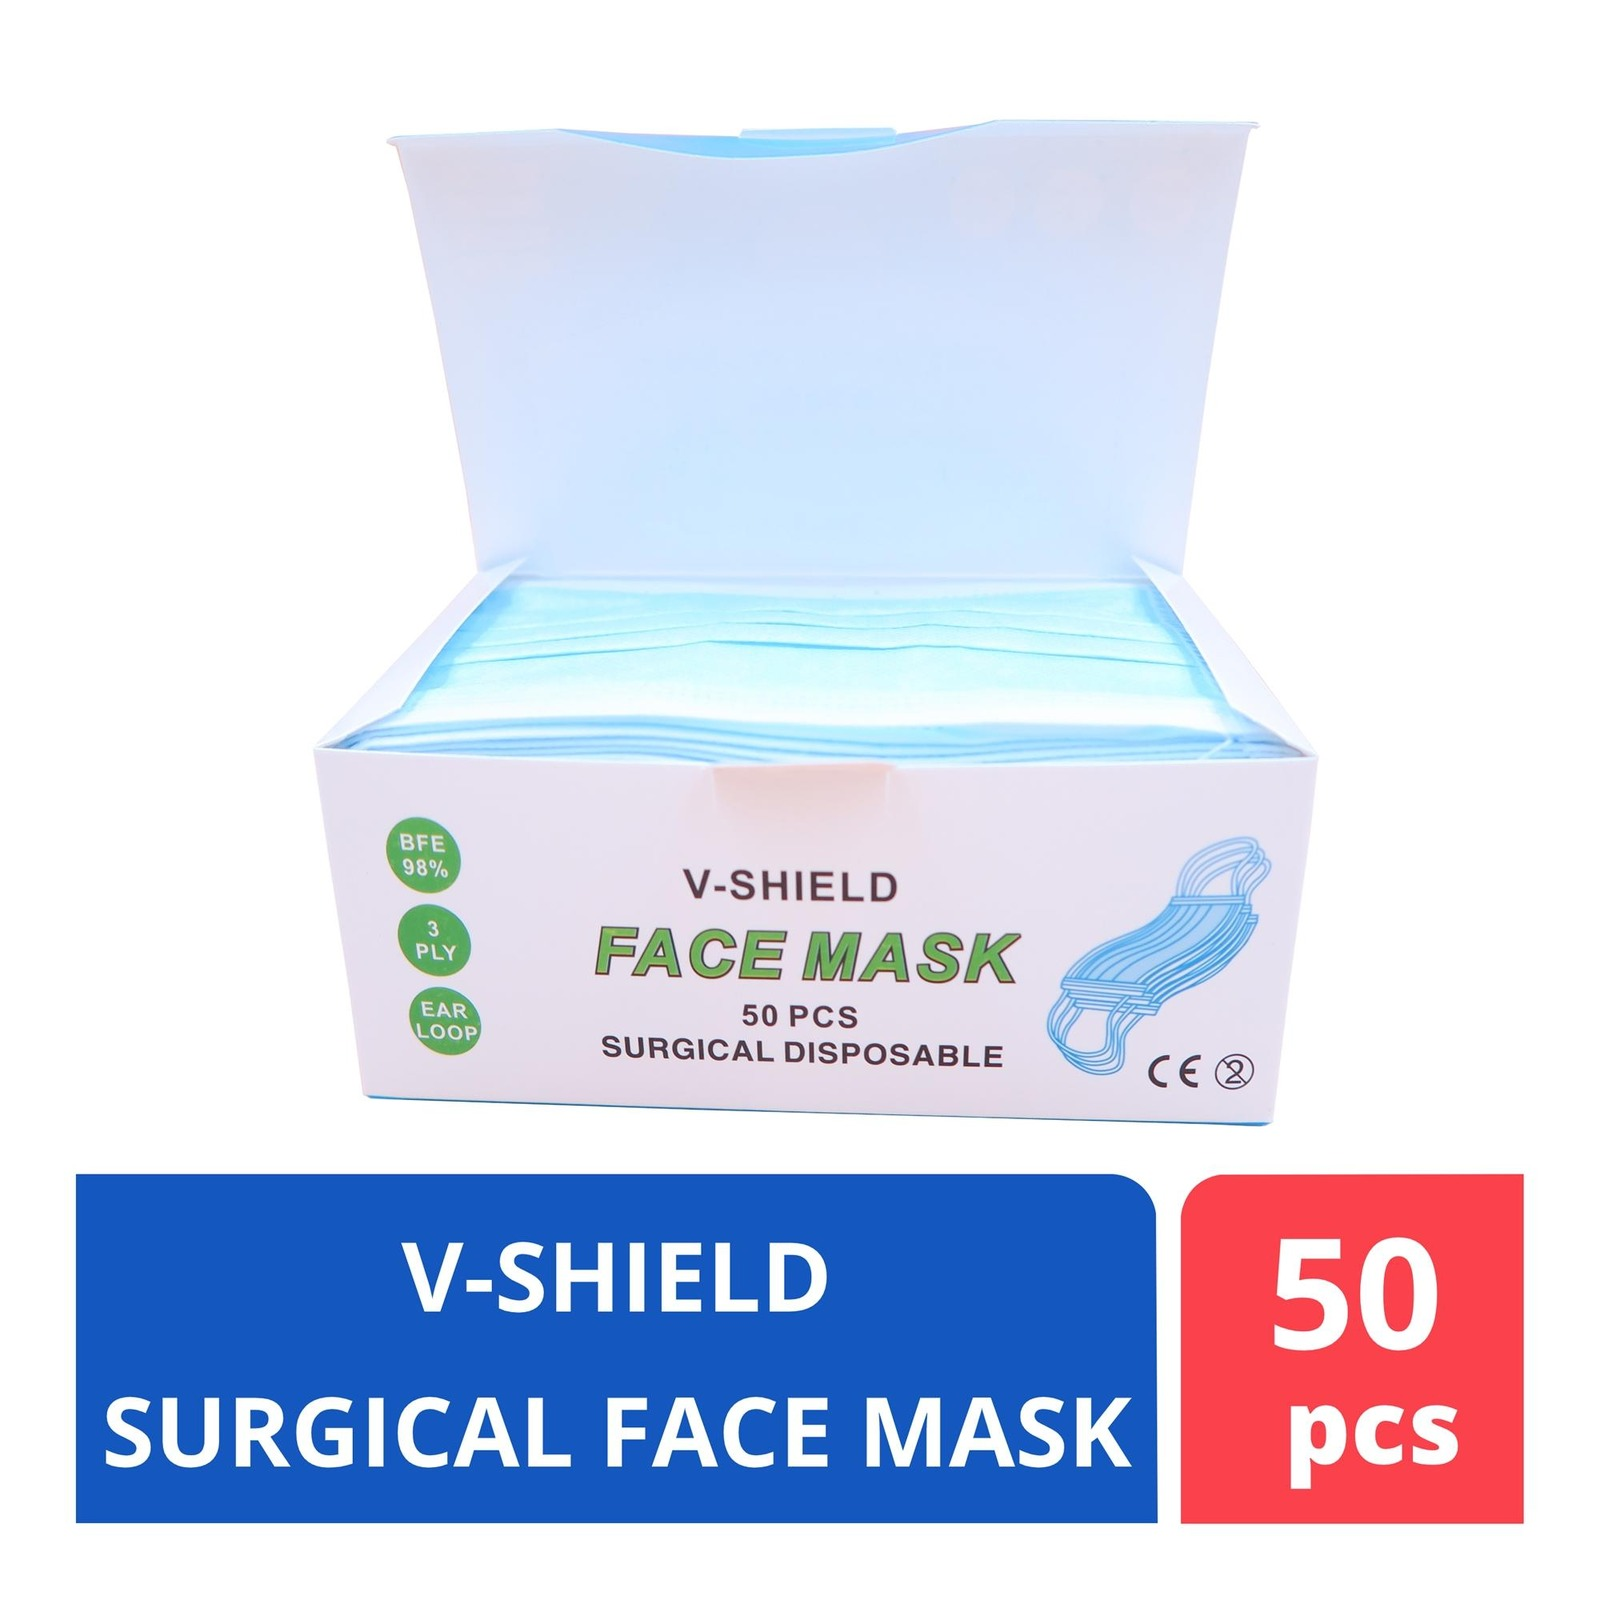 ALCARE Surgical Face Mask 3Ply - Generic box